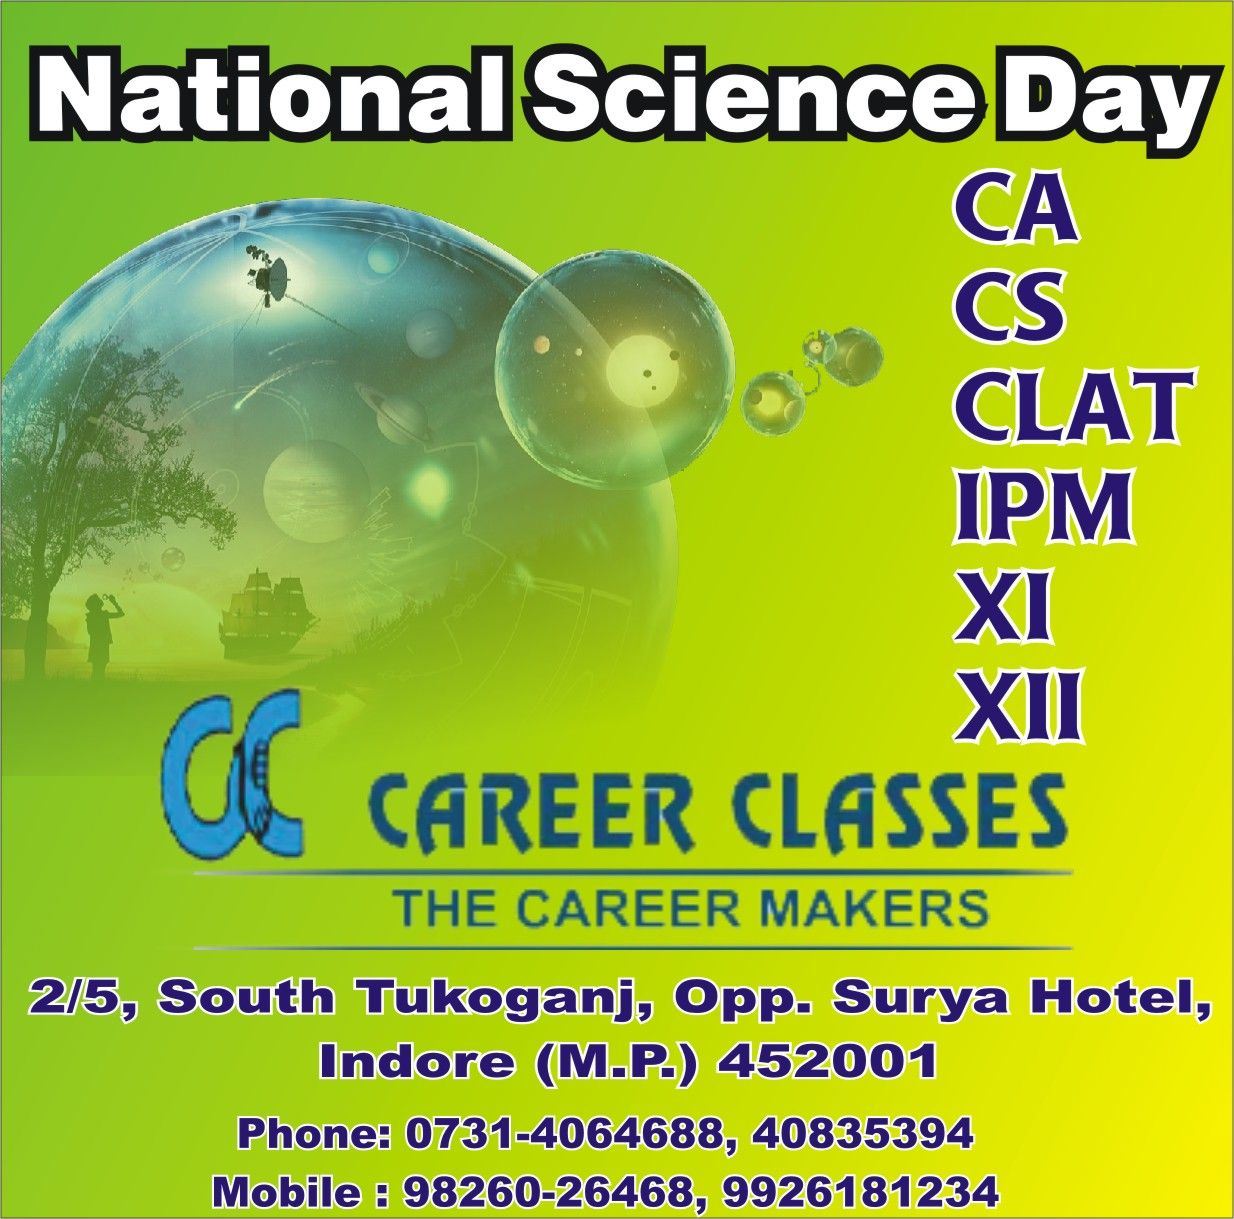 Pin by Career Classes Indore on Career Classes indore